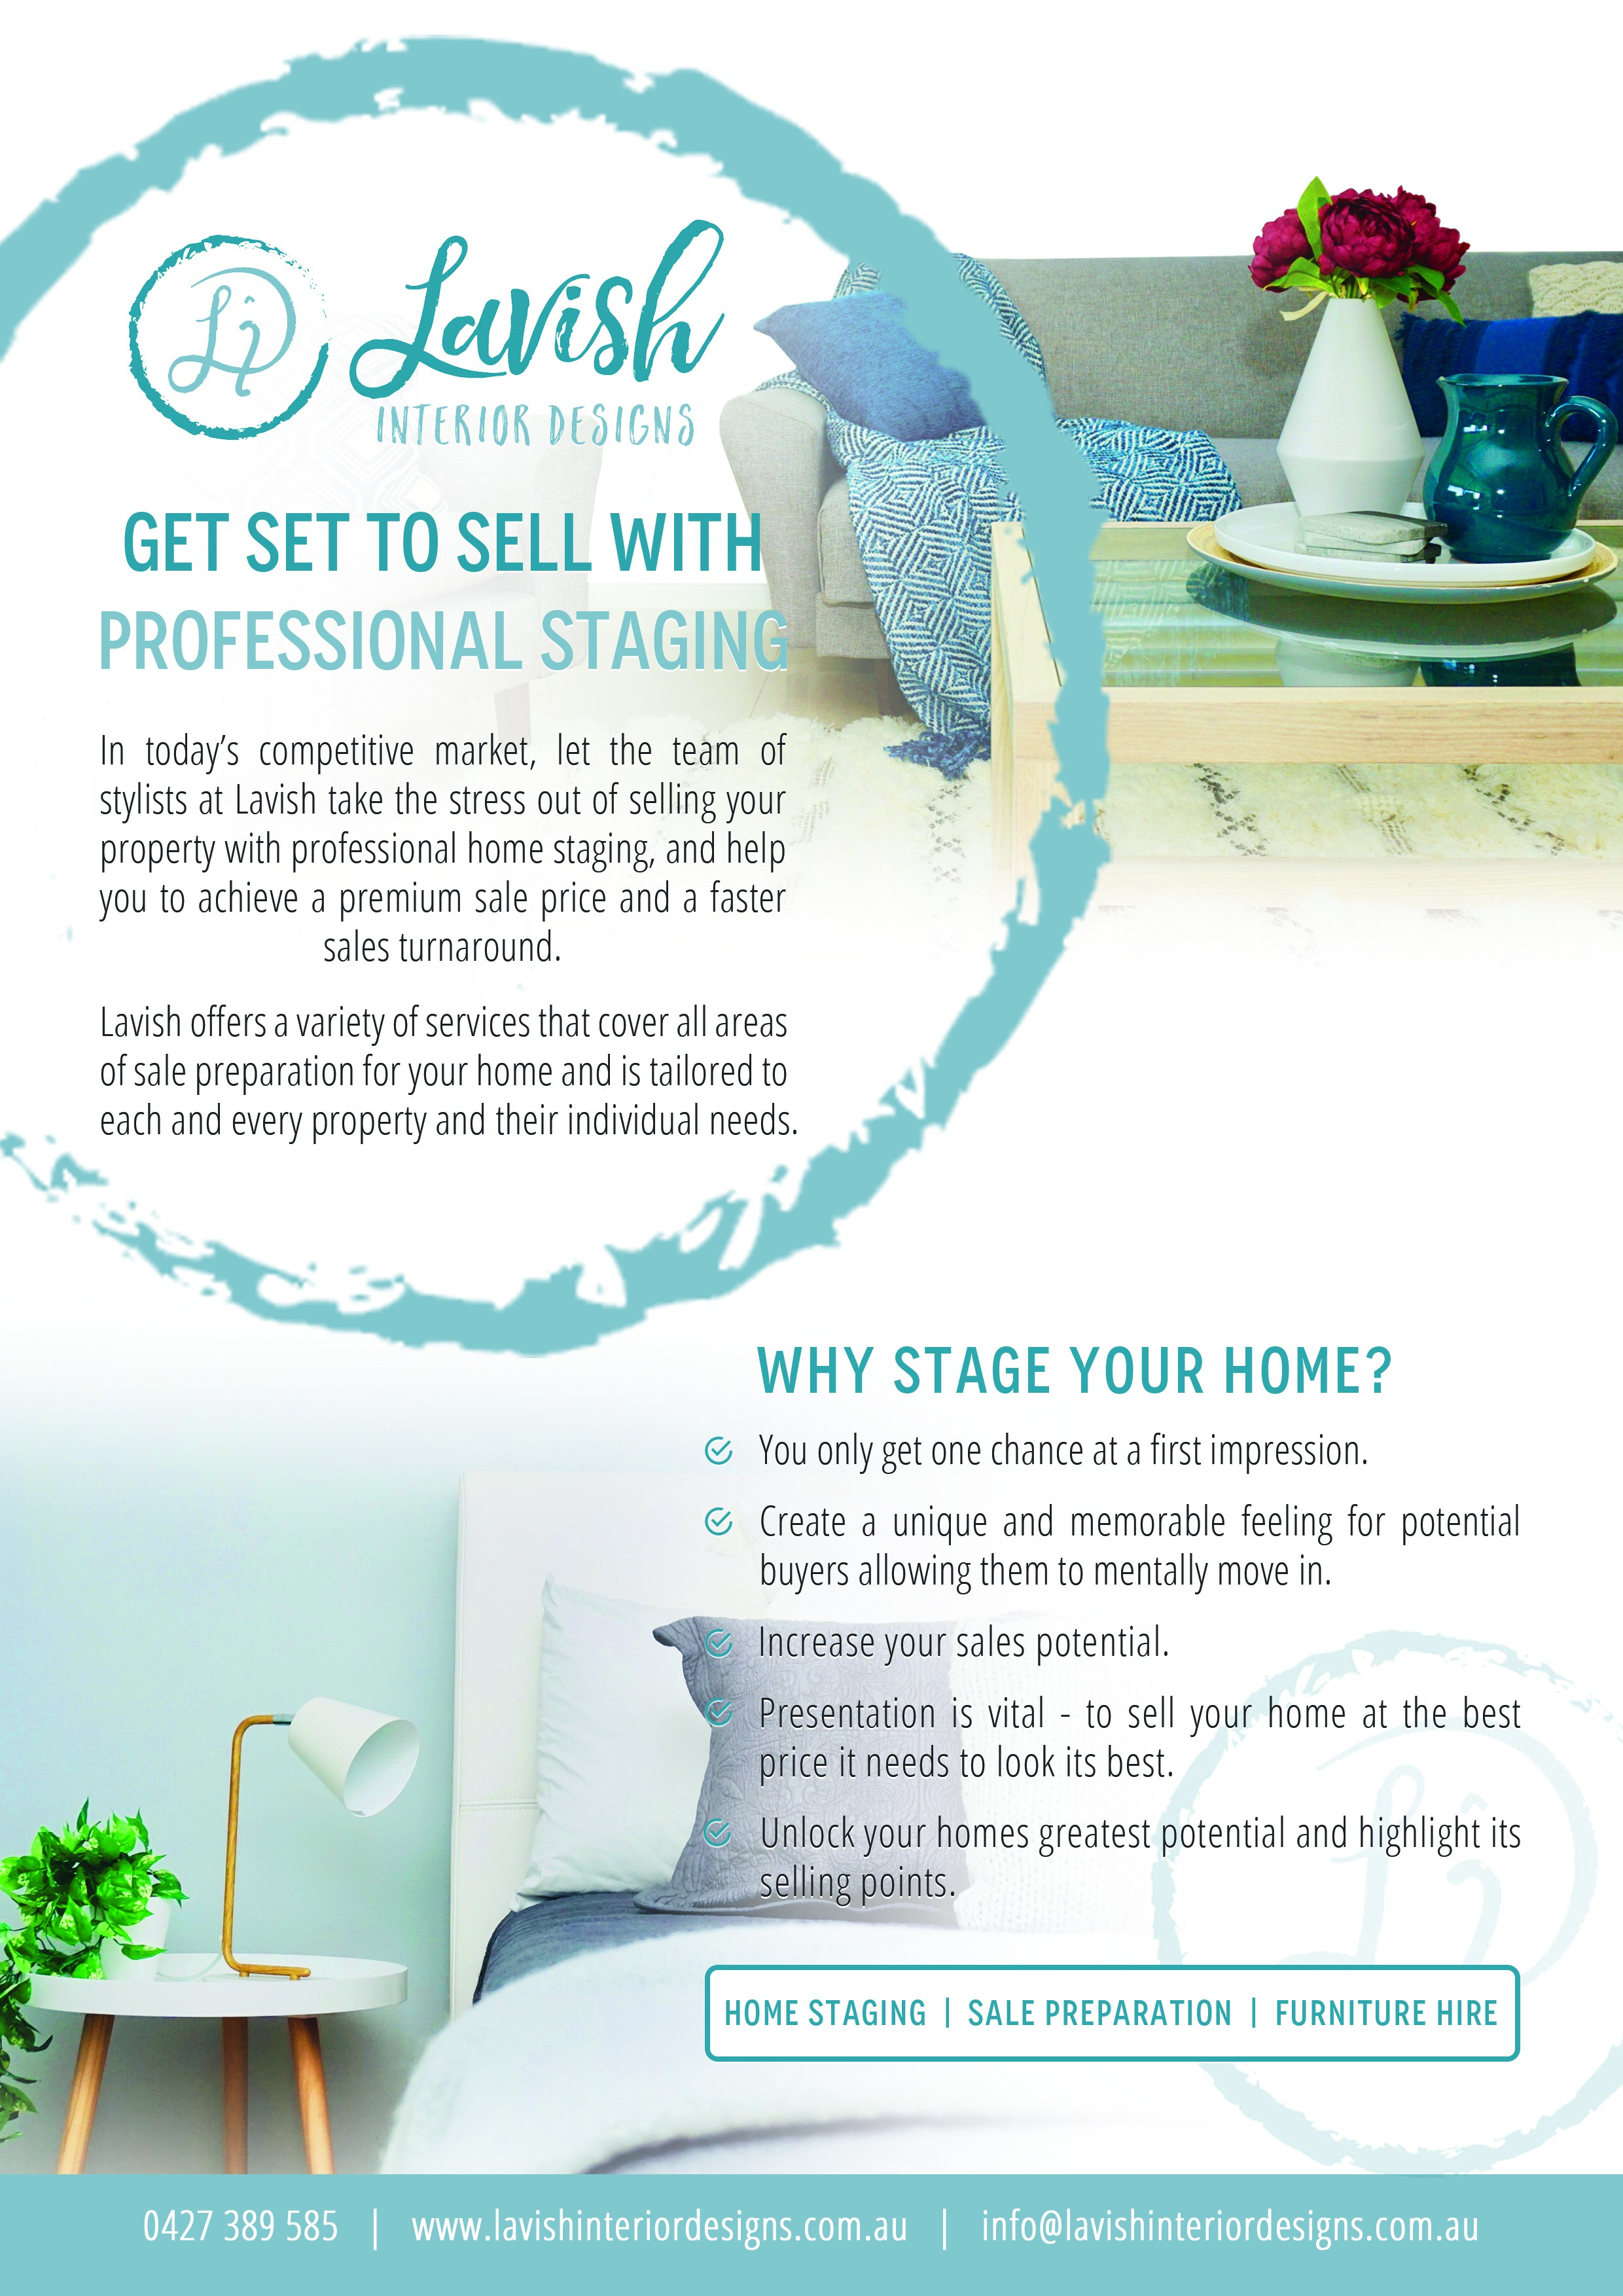 Design an A4 flyer for Home Staging business!